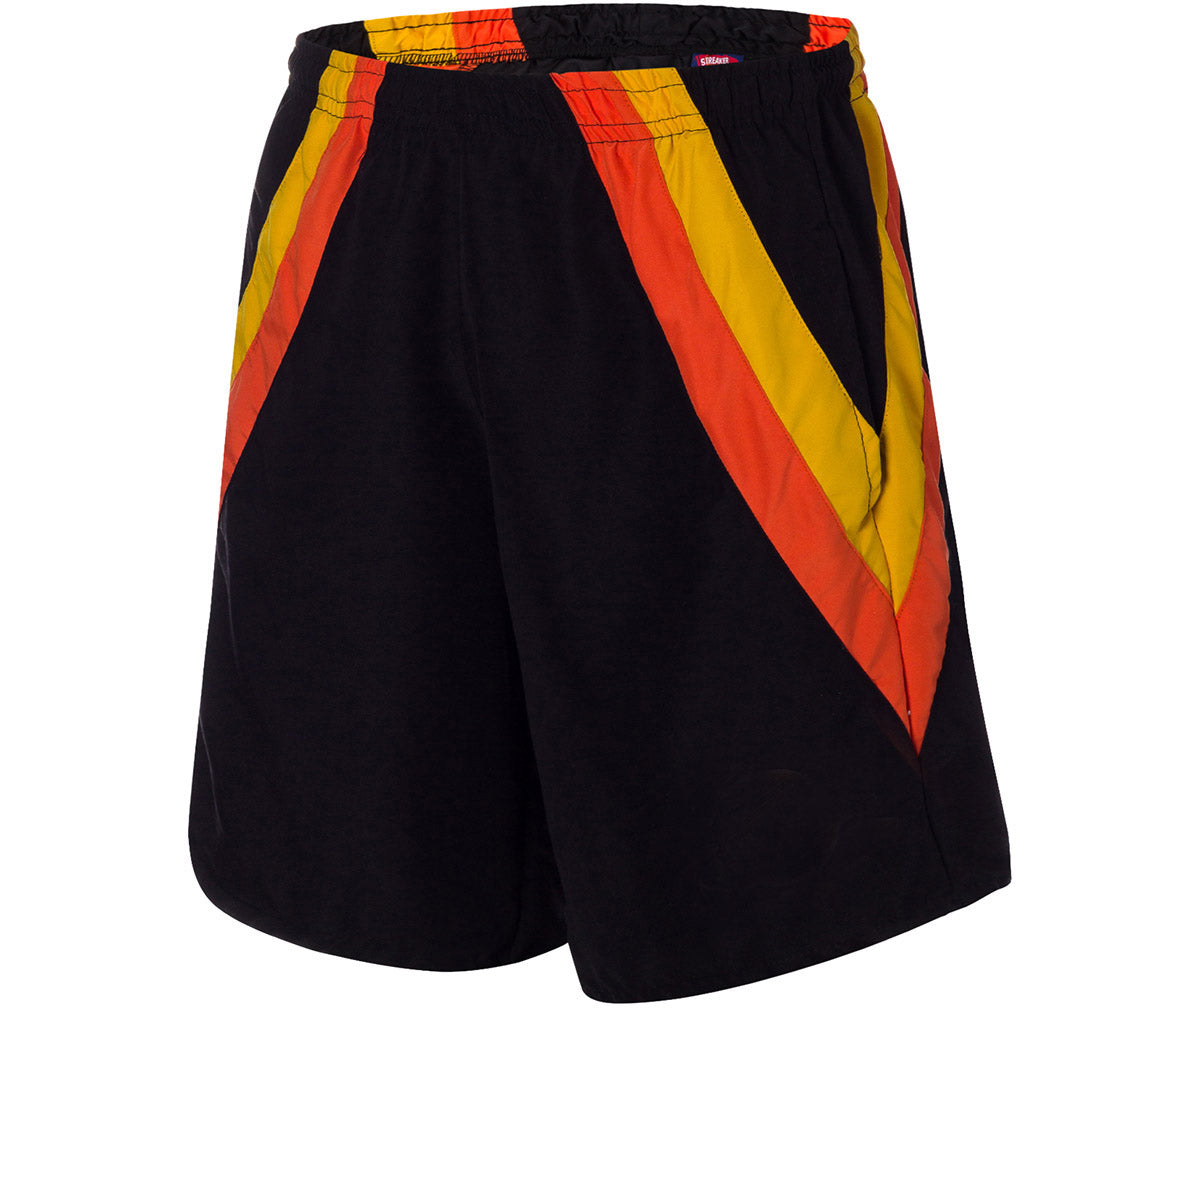 Vintage Vancouver Hockey Pant Shorts™ - Streaker Sports